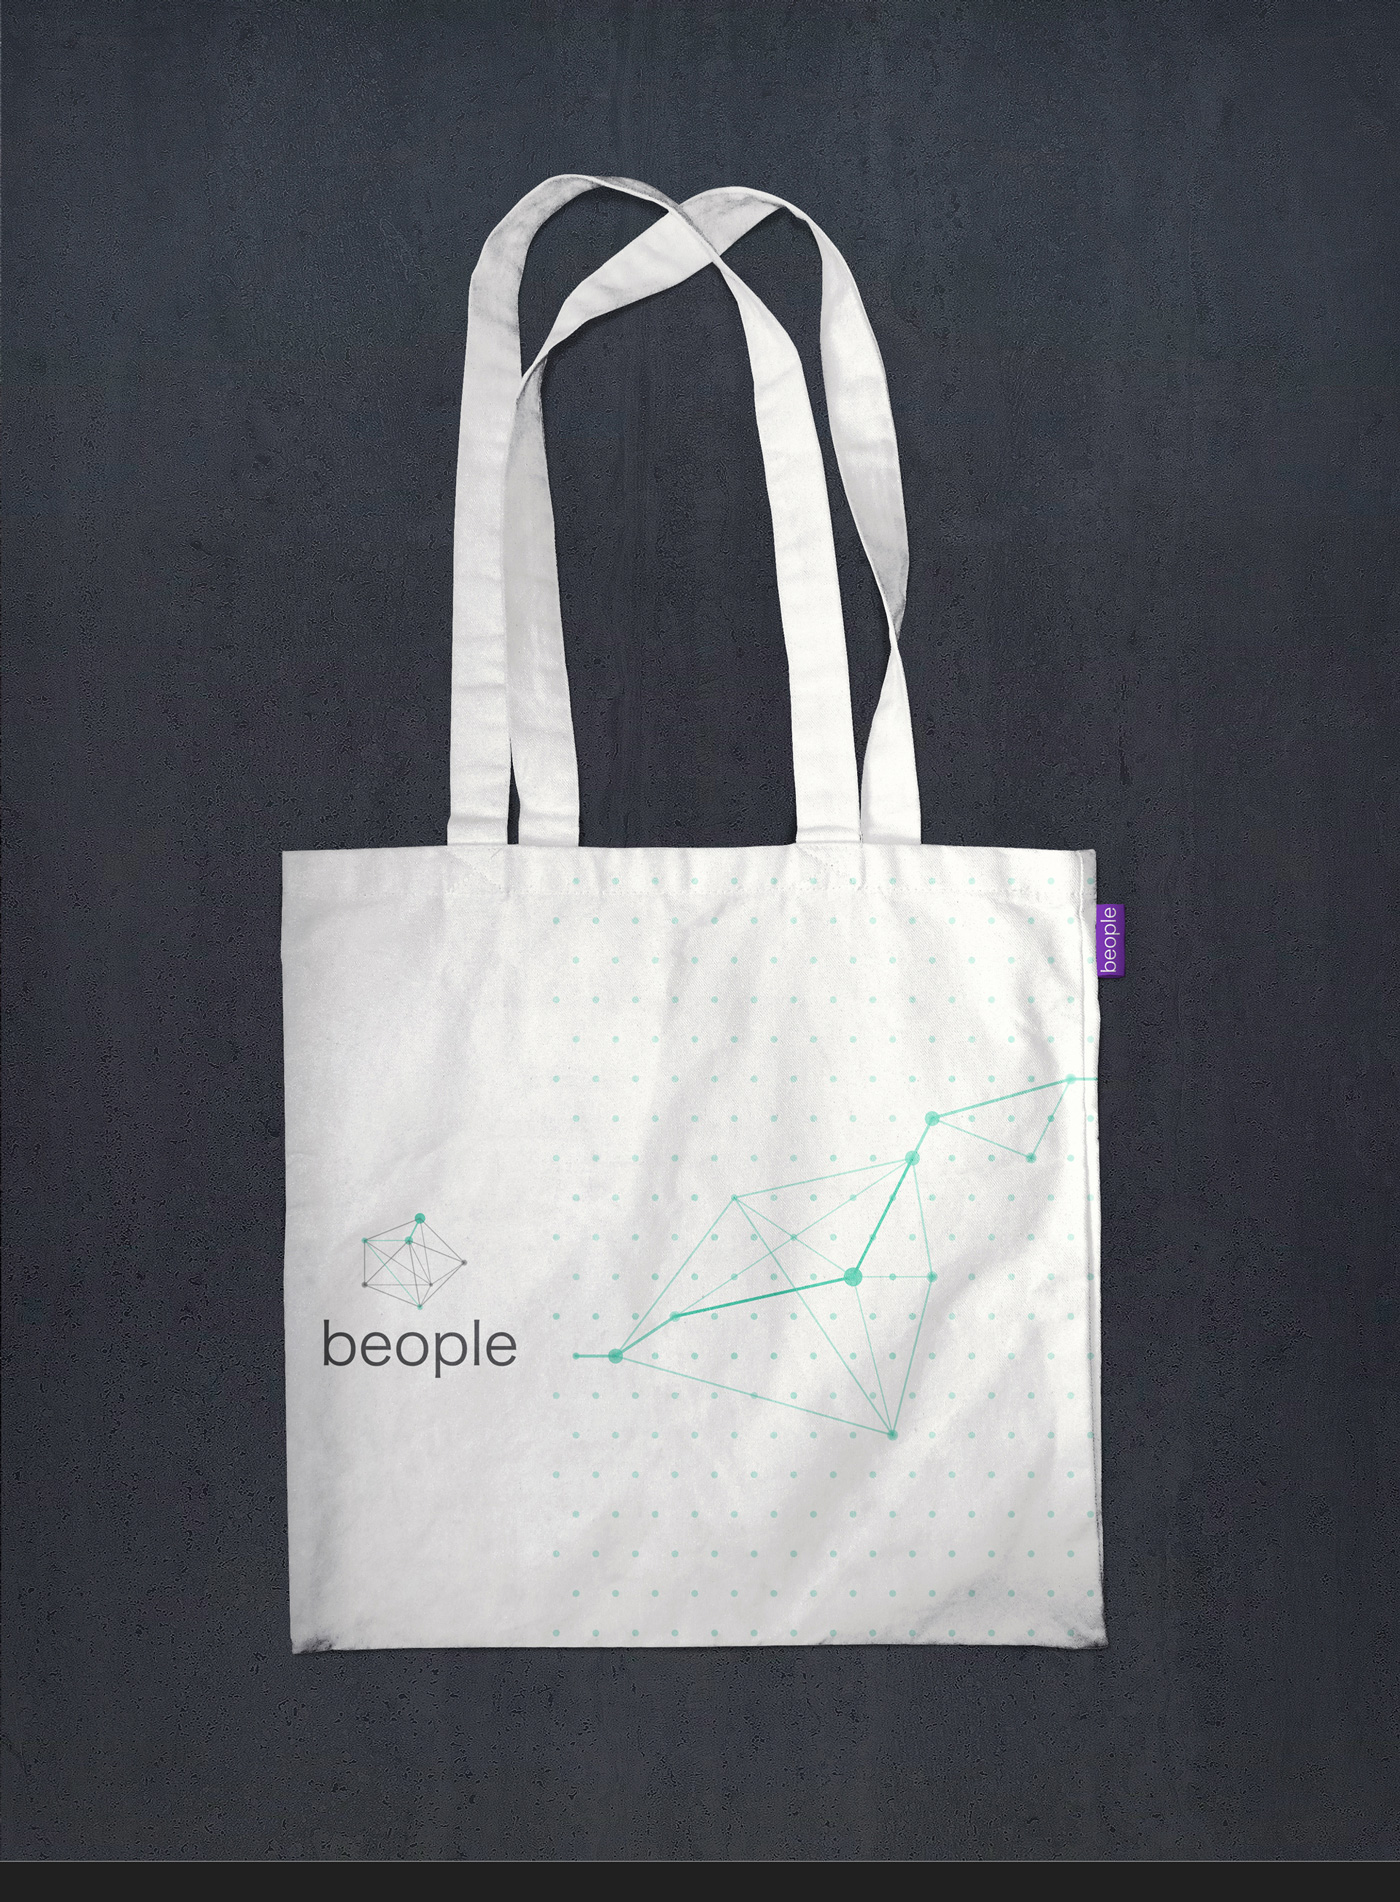 bag beople